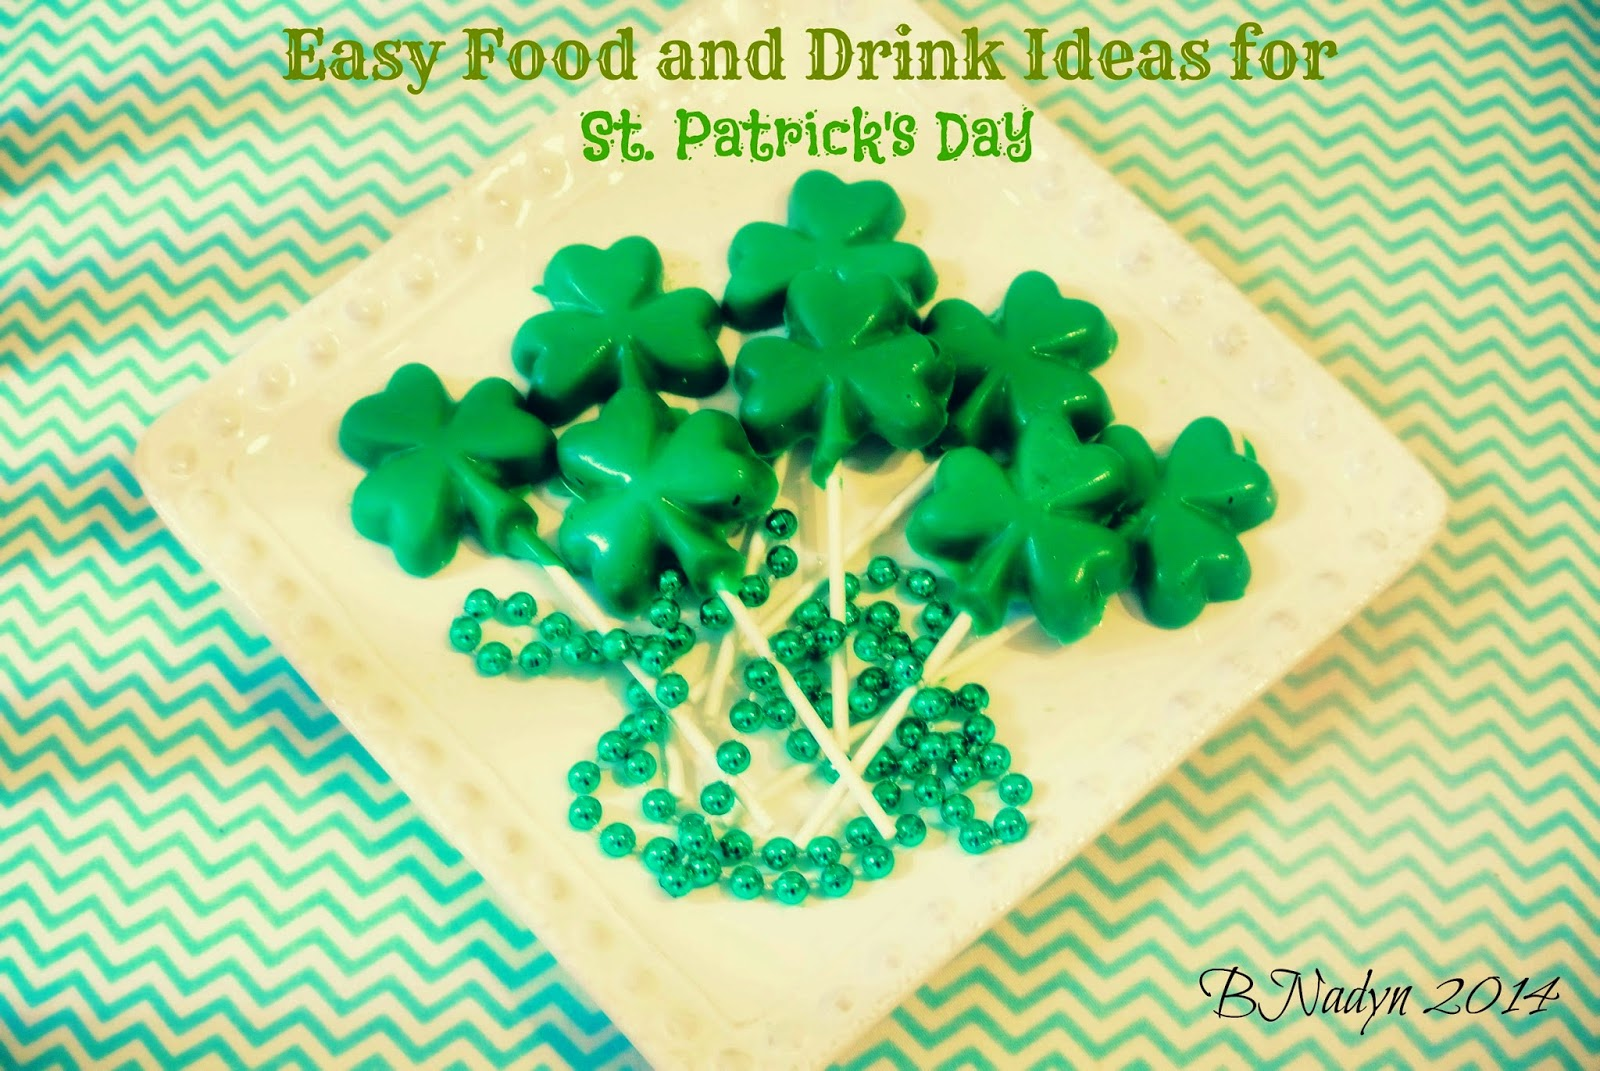 Easy Food and Drink Recipes for St.Patrick's Day